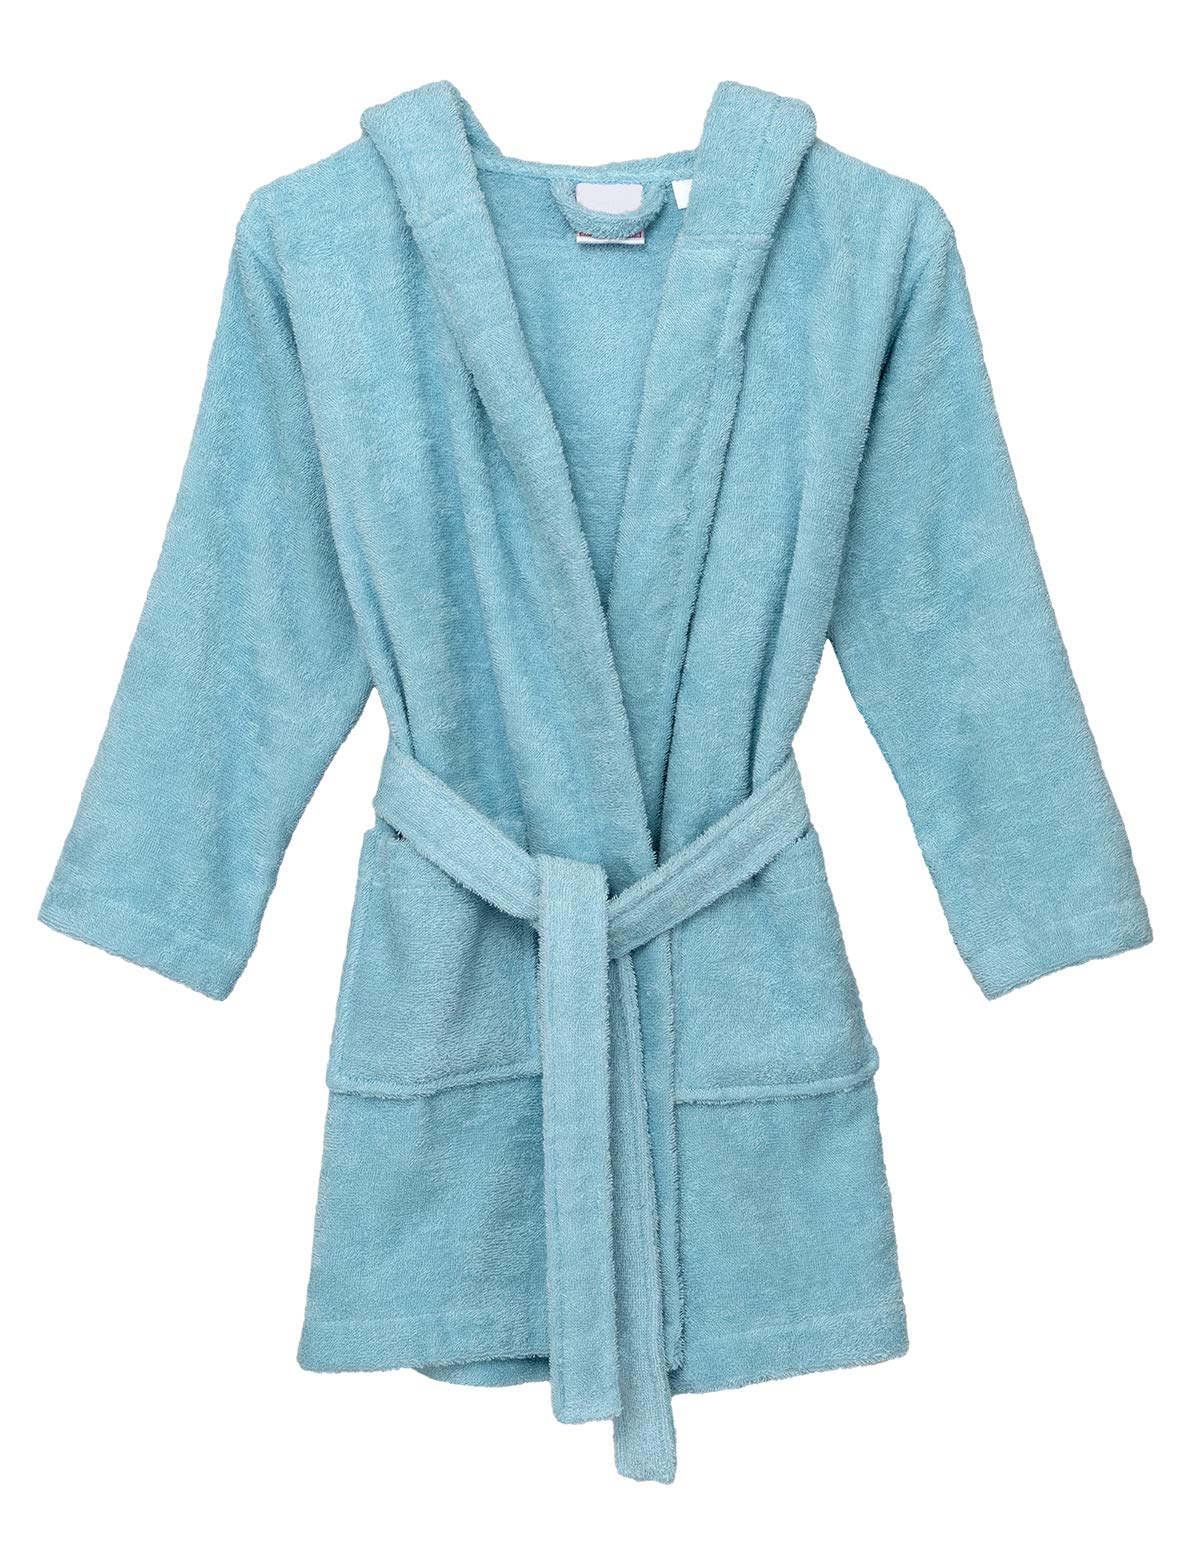 TowelSelections Big Boys' Robe, Kids Hooded Cotton Terry Bathrobe Cover-up Size 10 Blue Glow